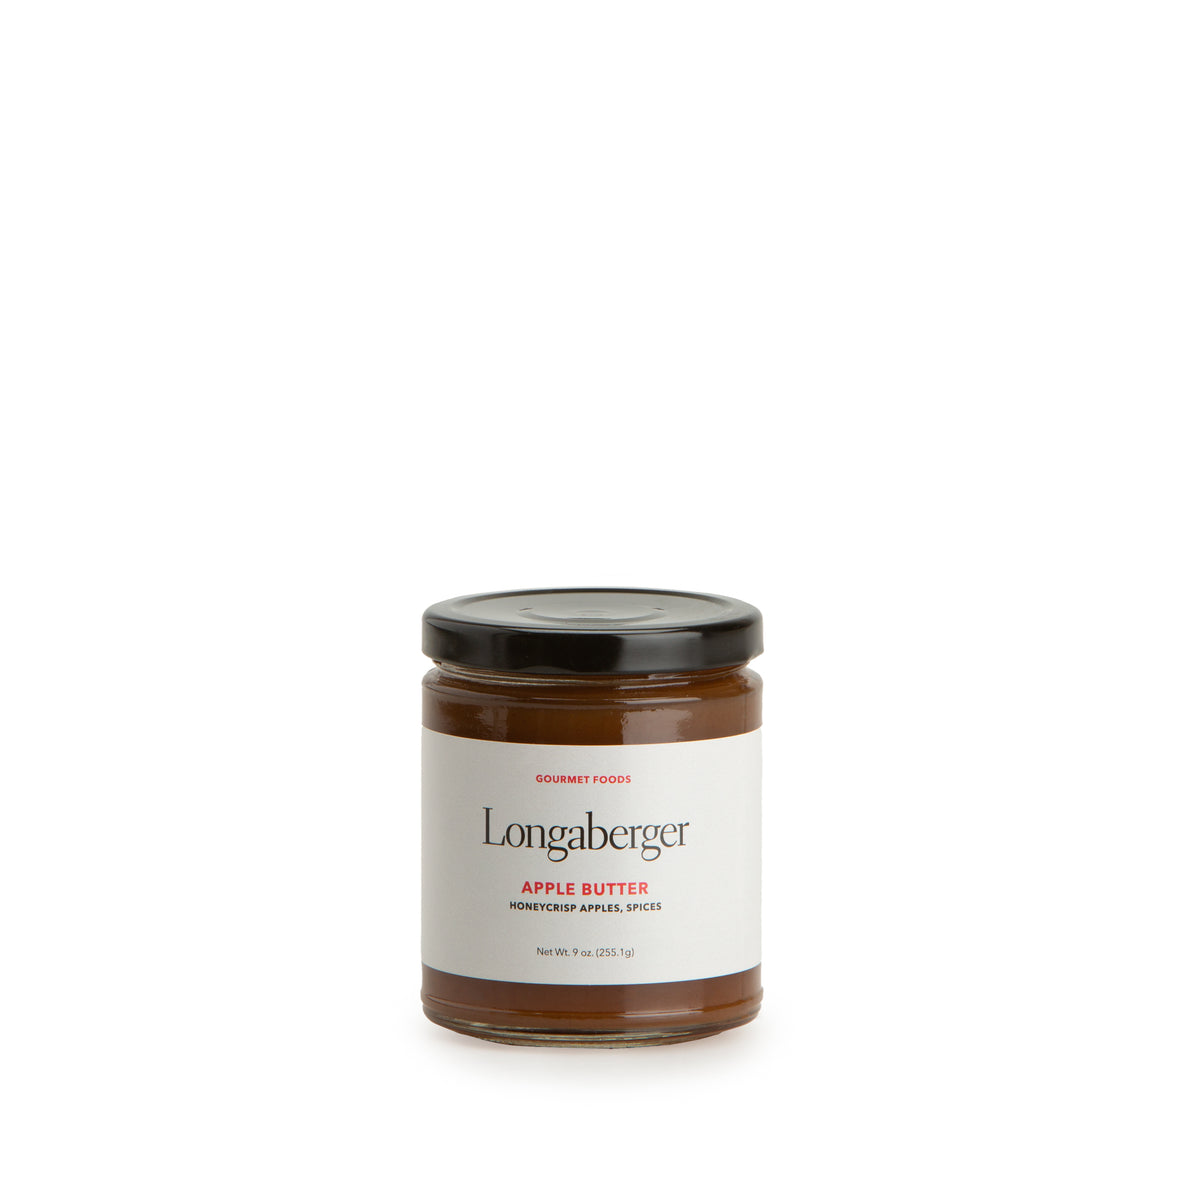 Longaberger Apple Butter